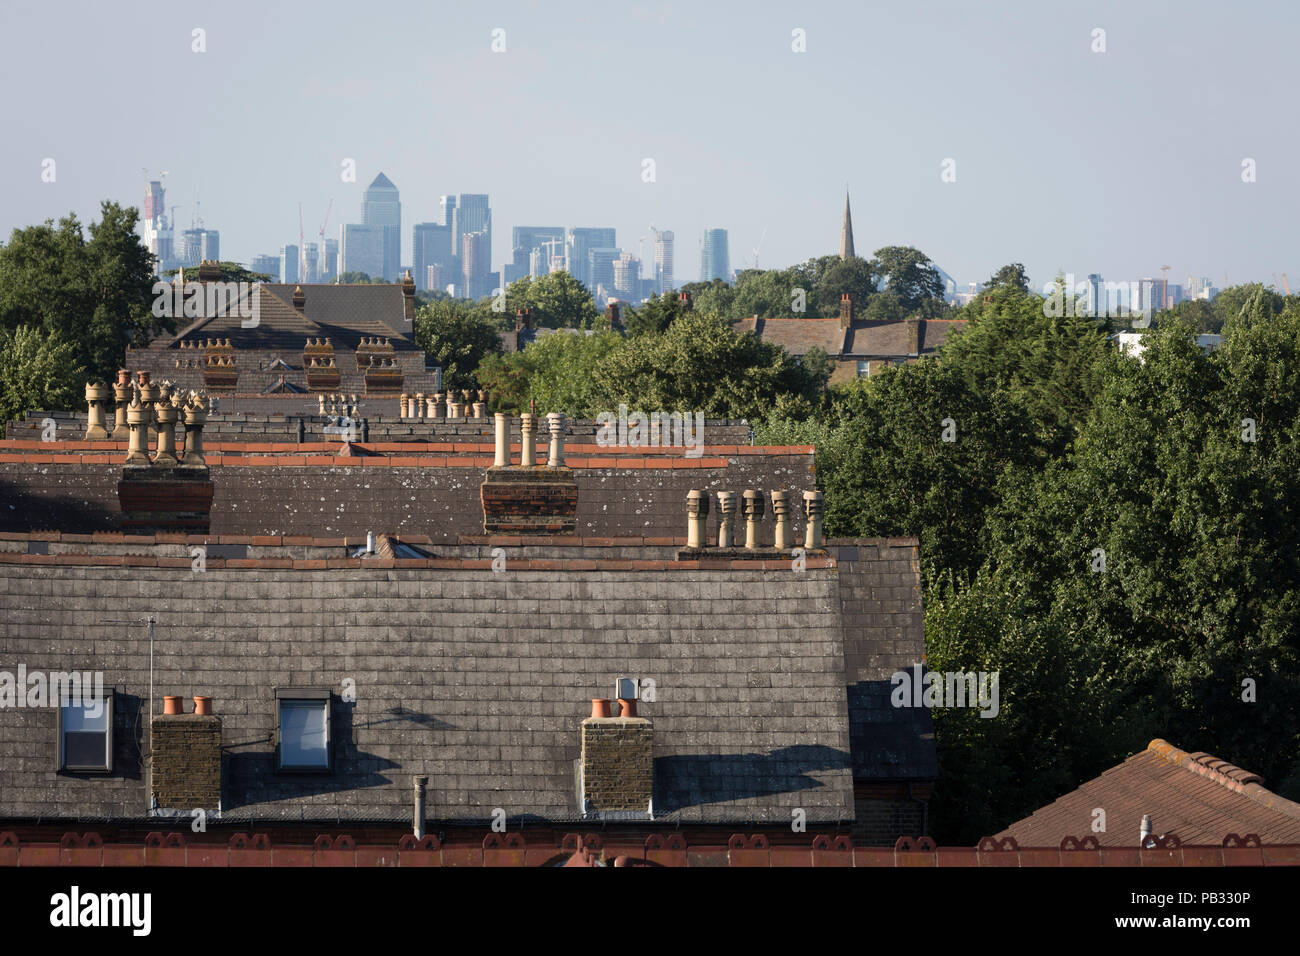 The rooftops of Sydenham houses and in the distance, the tall buildings of London Docklands, on 23rd July 2018, in London, England. - Stock Image